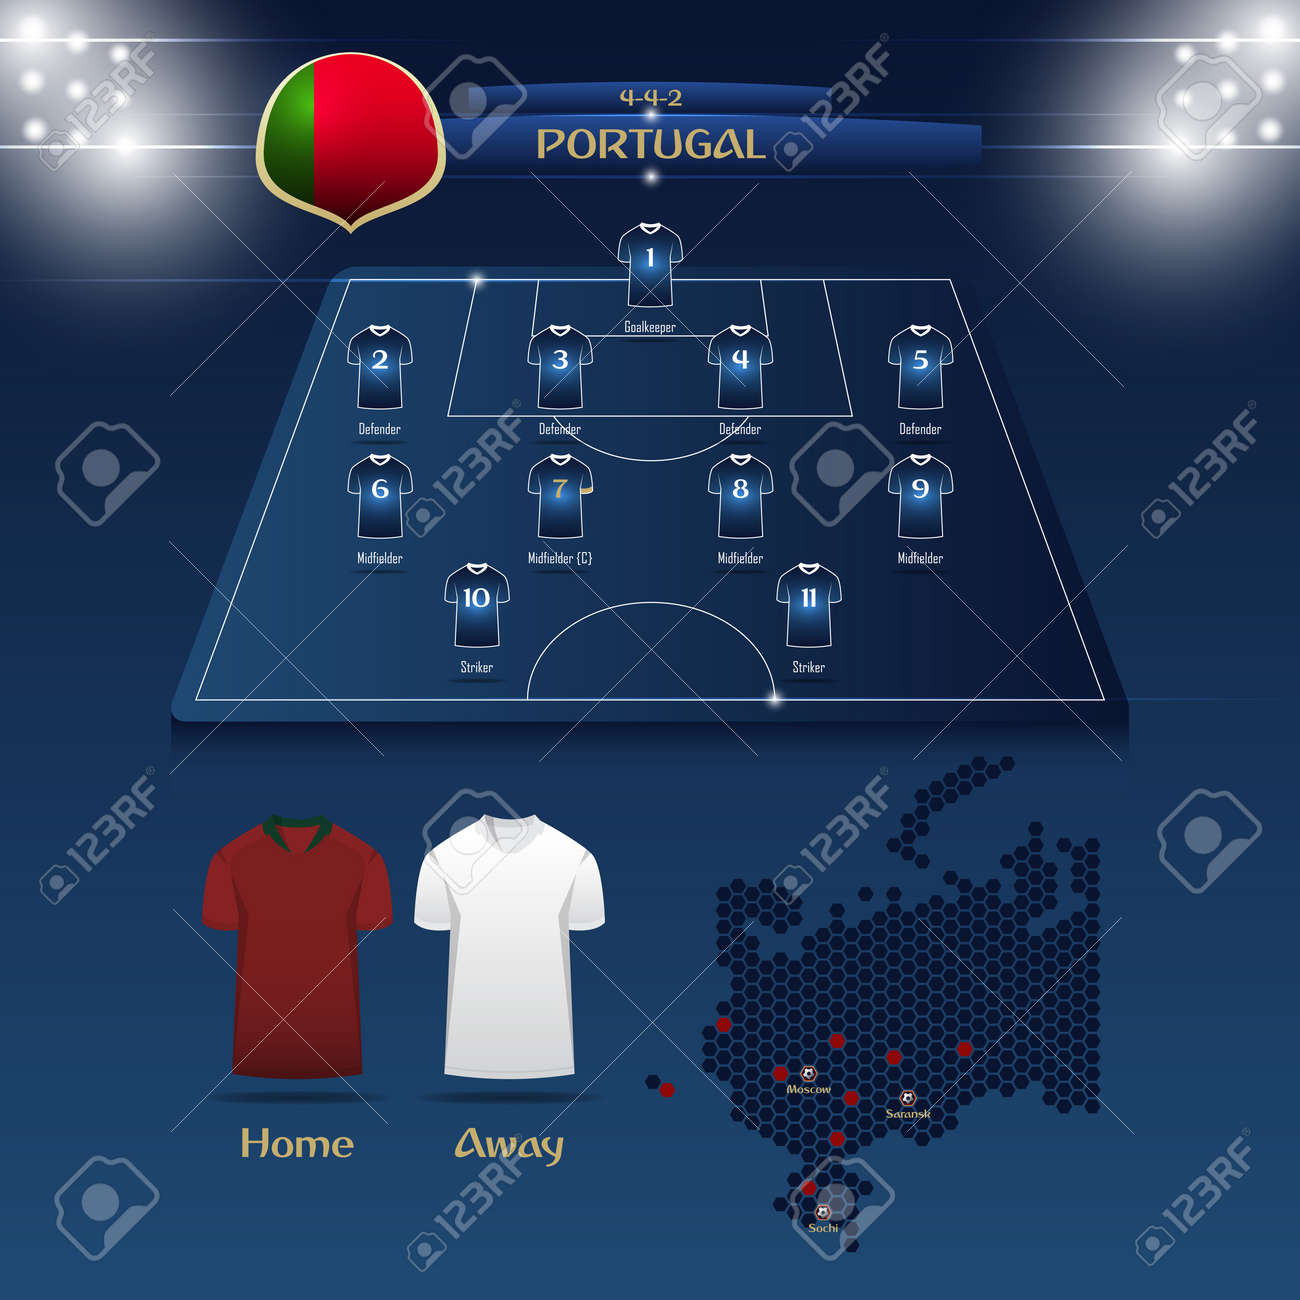 hight resolution of team portugal soccer jersey or football kit with match formation tactic info graphic football